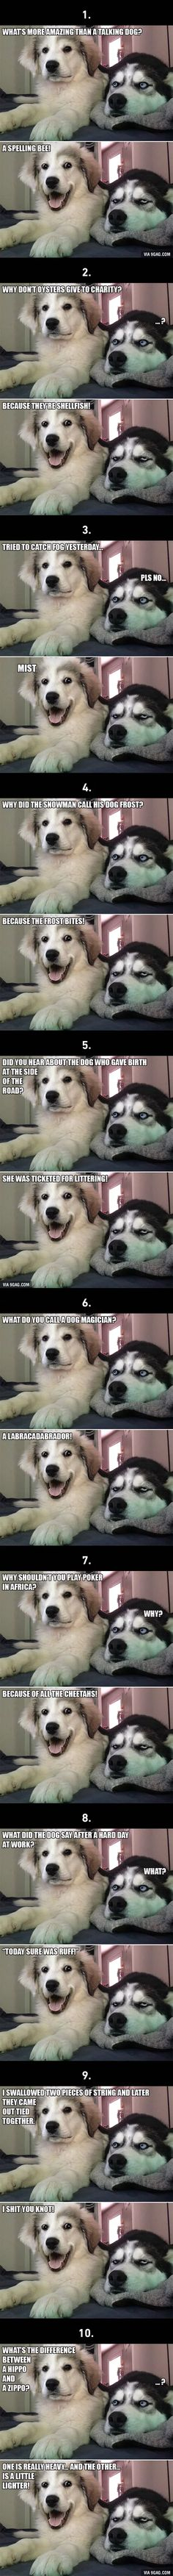 10 Best Bad Puns Dog Memes Ever is part of Puns jokes - More memes, funny videos and pics on Funny Animal Jokes, Dog Jokes, Puns Jokes, Corny Jokes, Really Funny Memes, Stupid Funny Memes, Cute Funny Animals, Funny Relatable Memes, Funny Animal Pictures